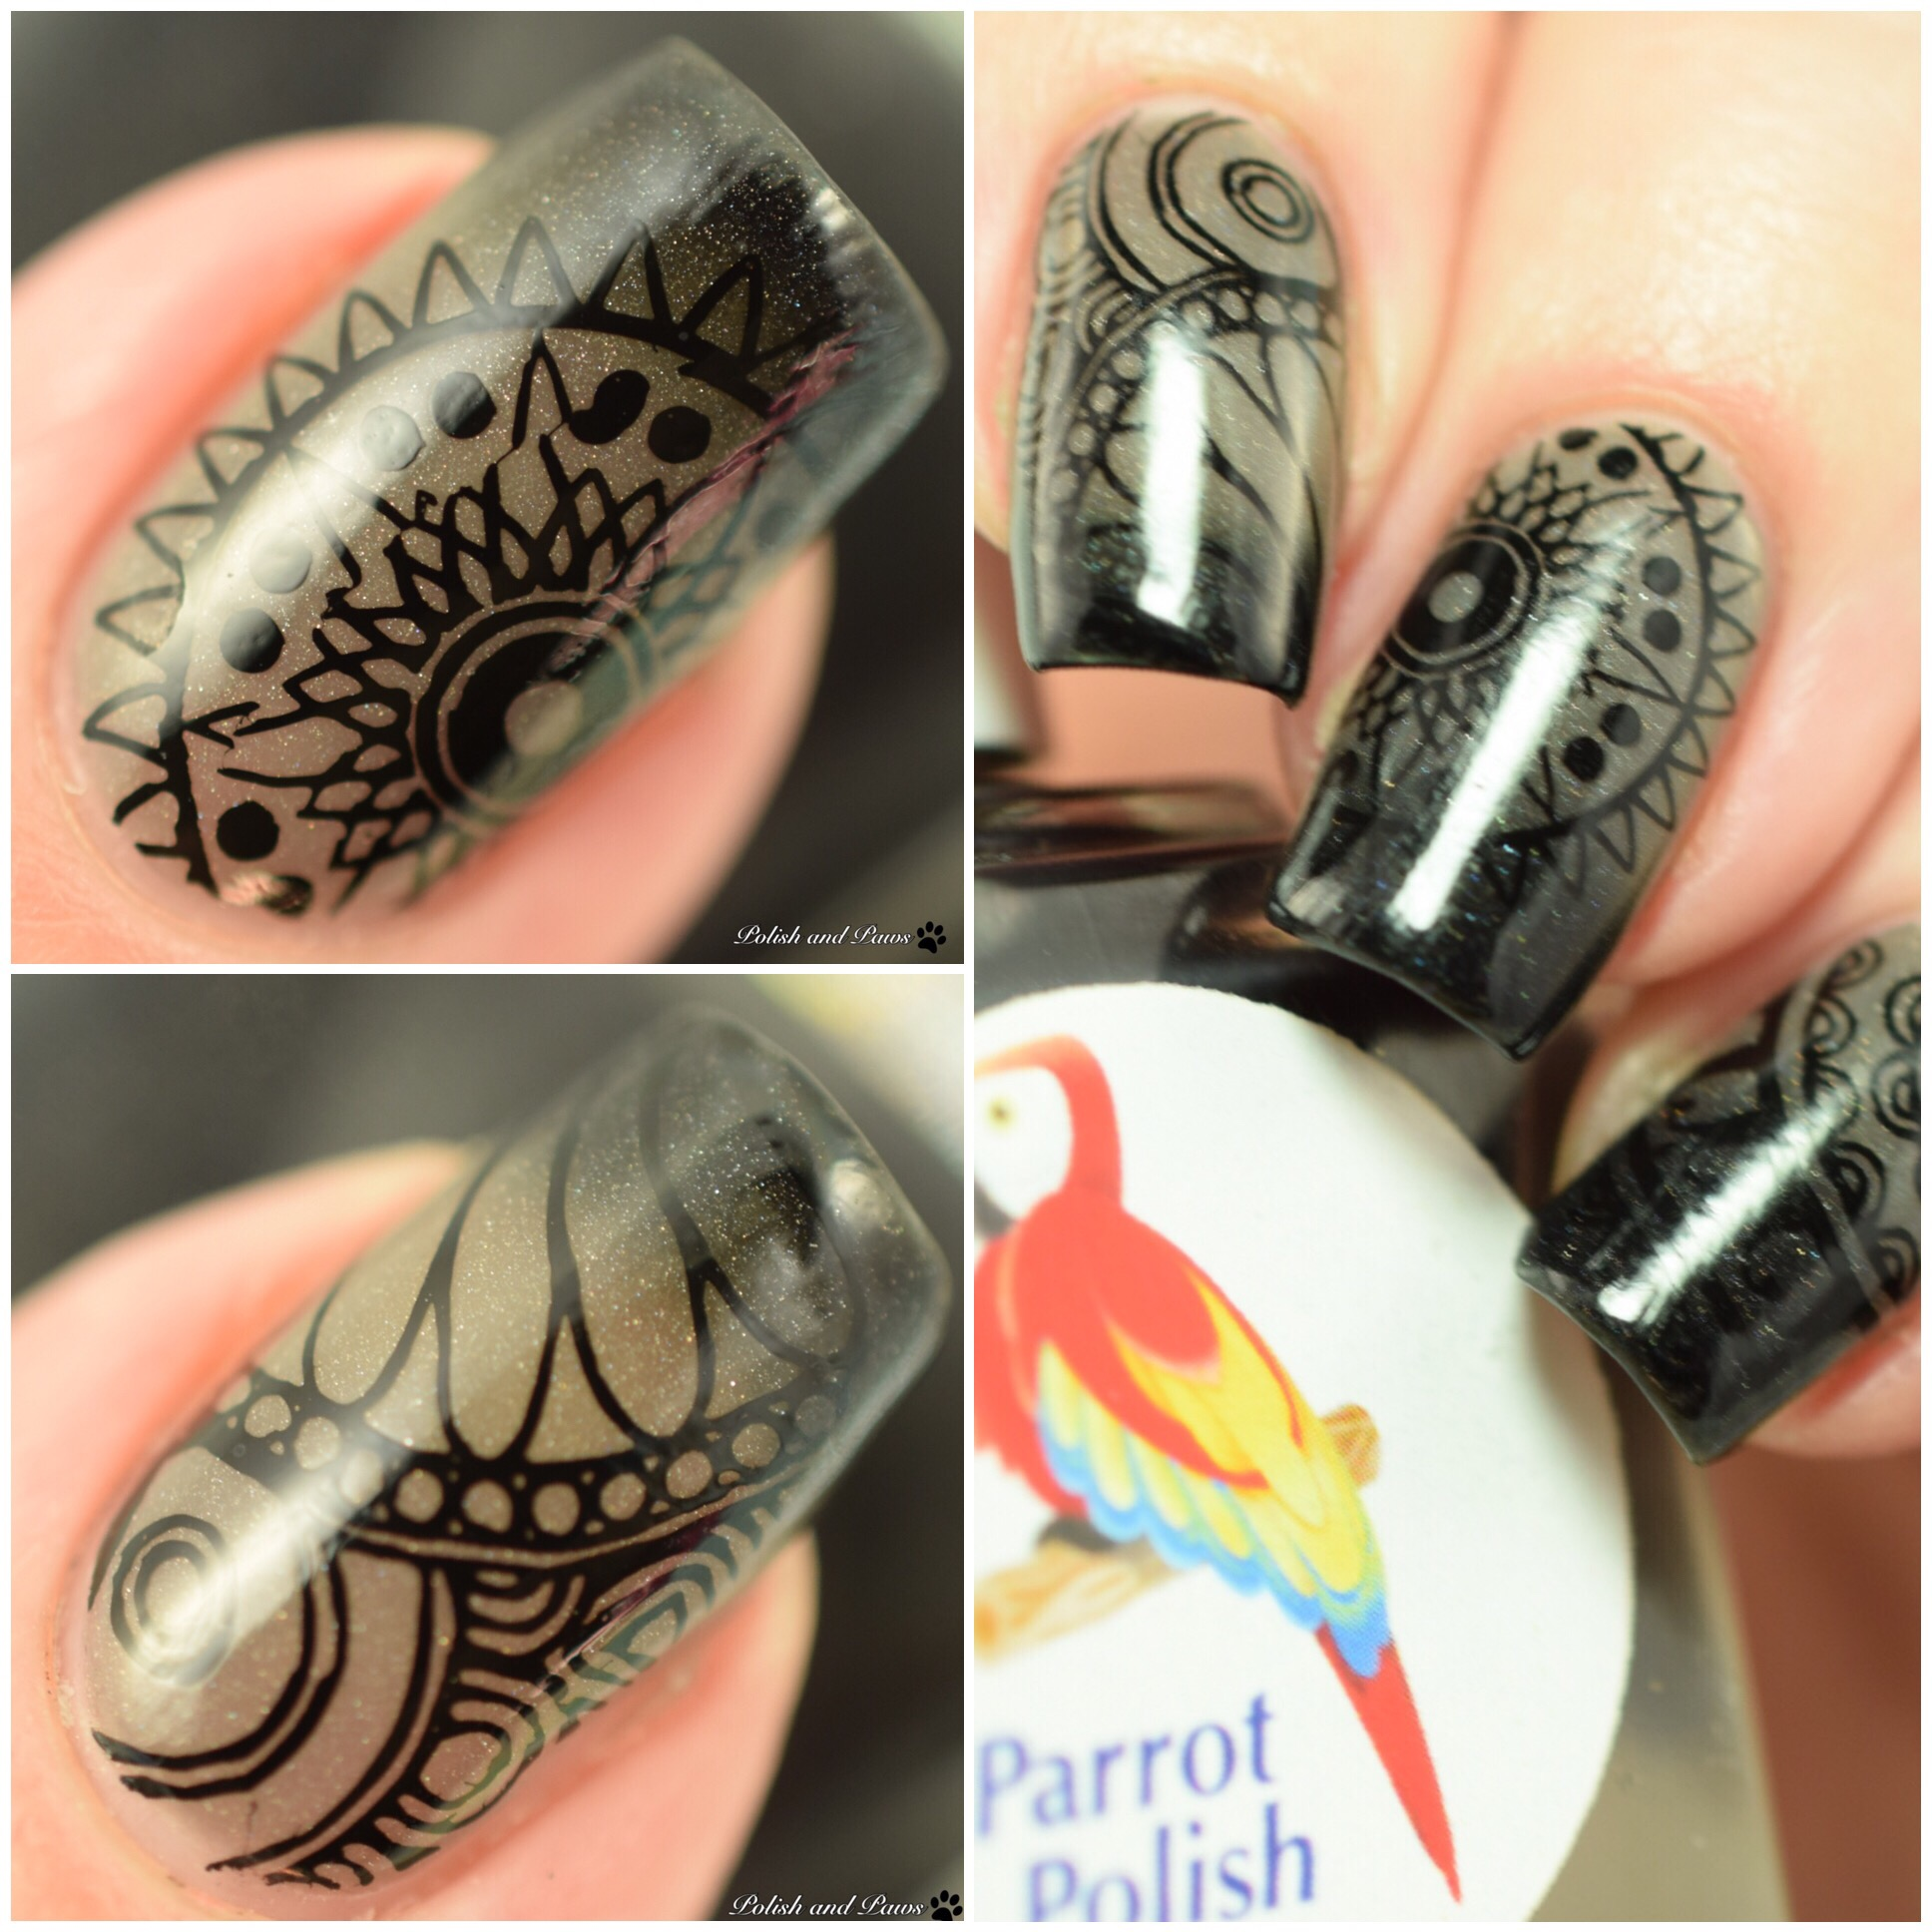 Parrot Polish Black Magic